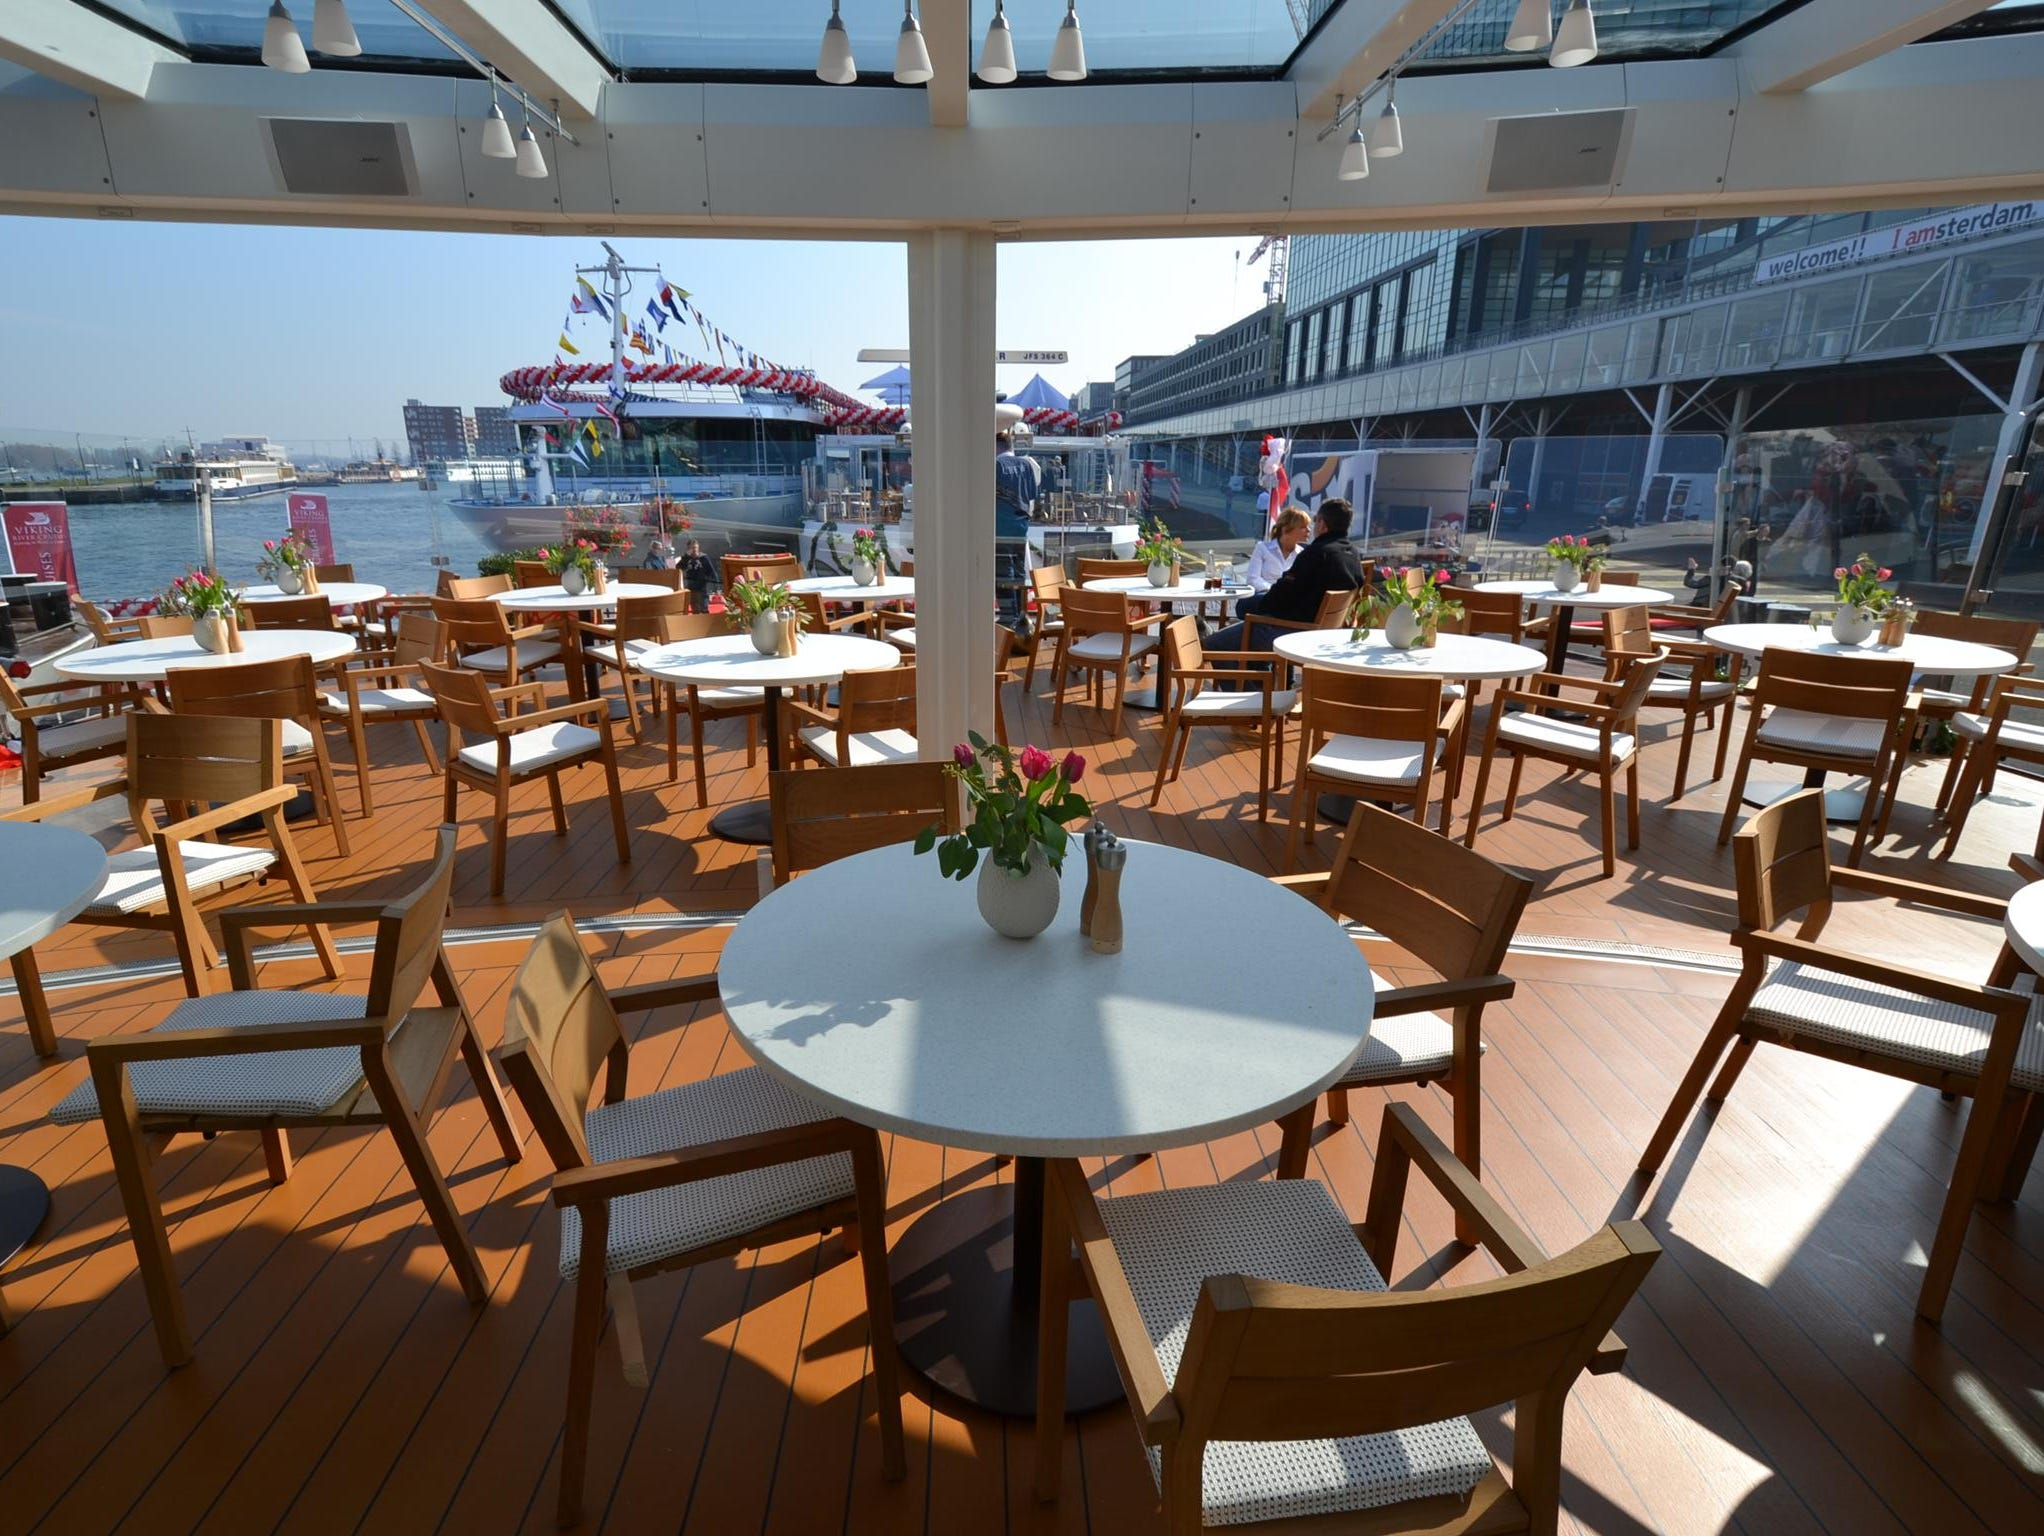 Called Aquavit, the Viking Odin's terrace area has seating for several dozen passengers with views over the ship's bow.